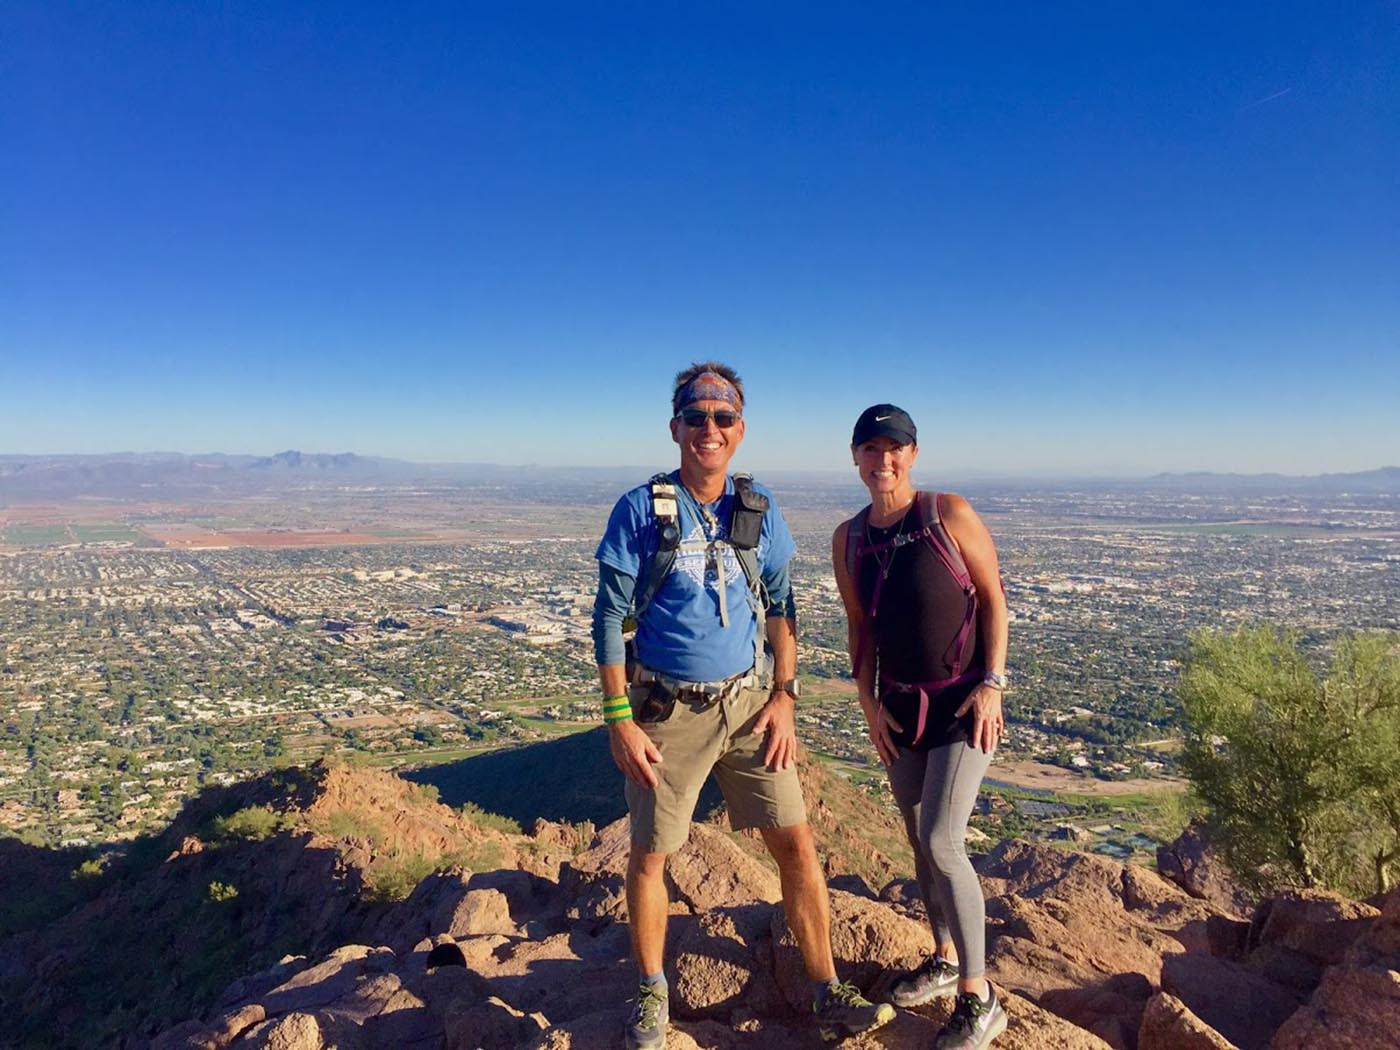 Camelback Mountain Scottsdale AZ - The View From The Top